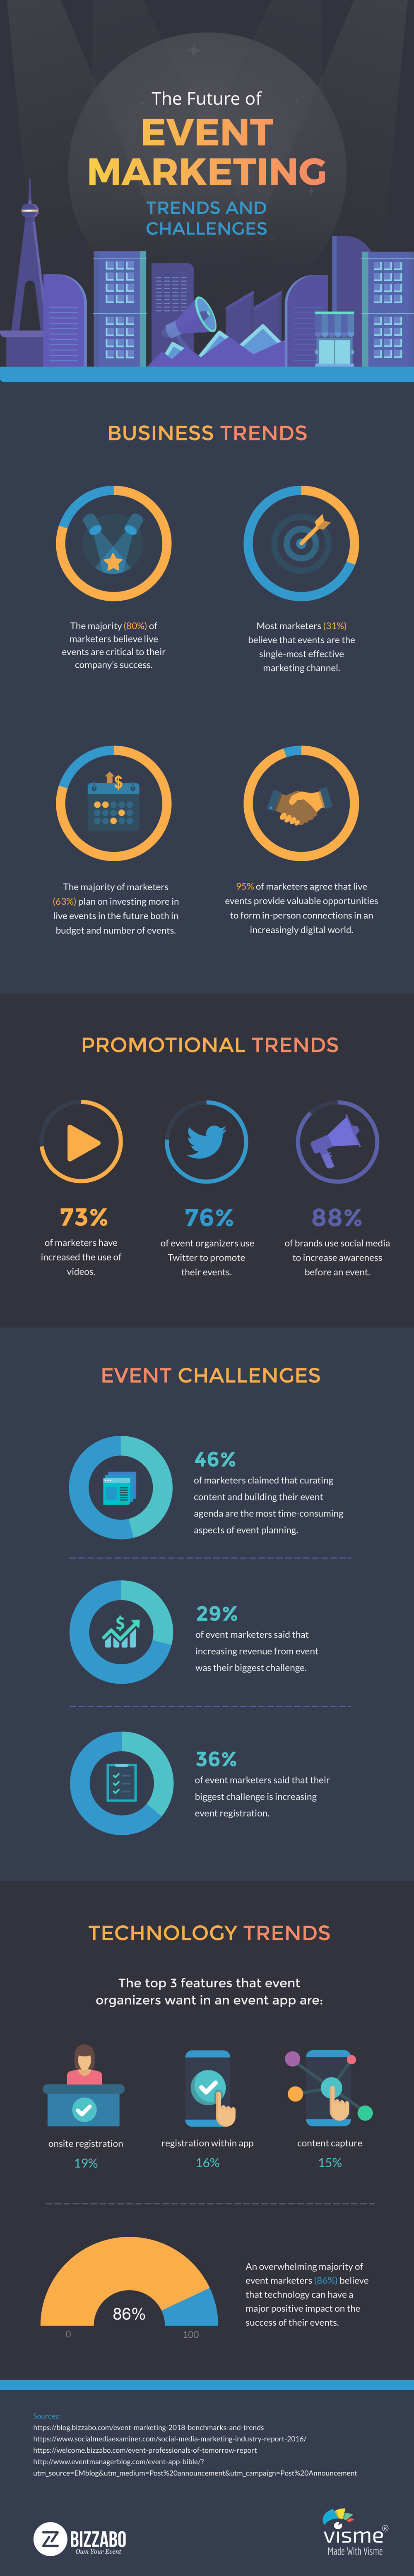 Event Marketing Trends and Challenges [Infographic]